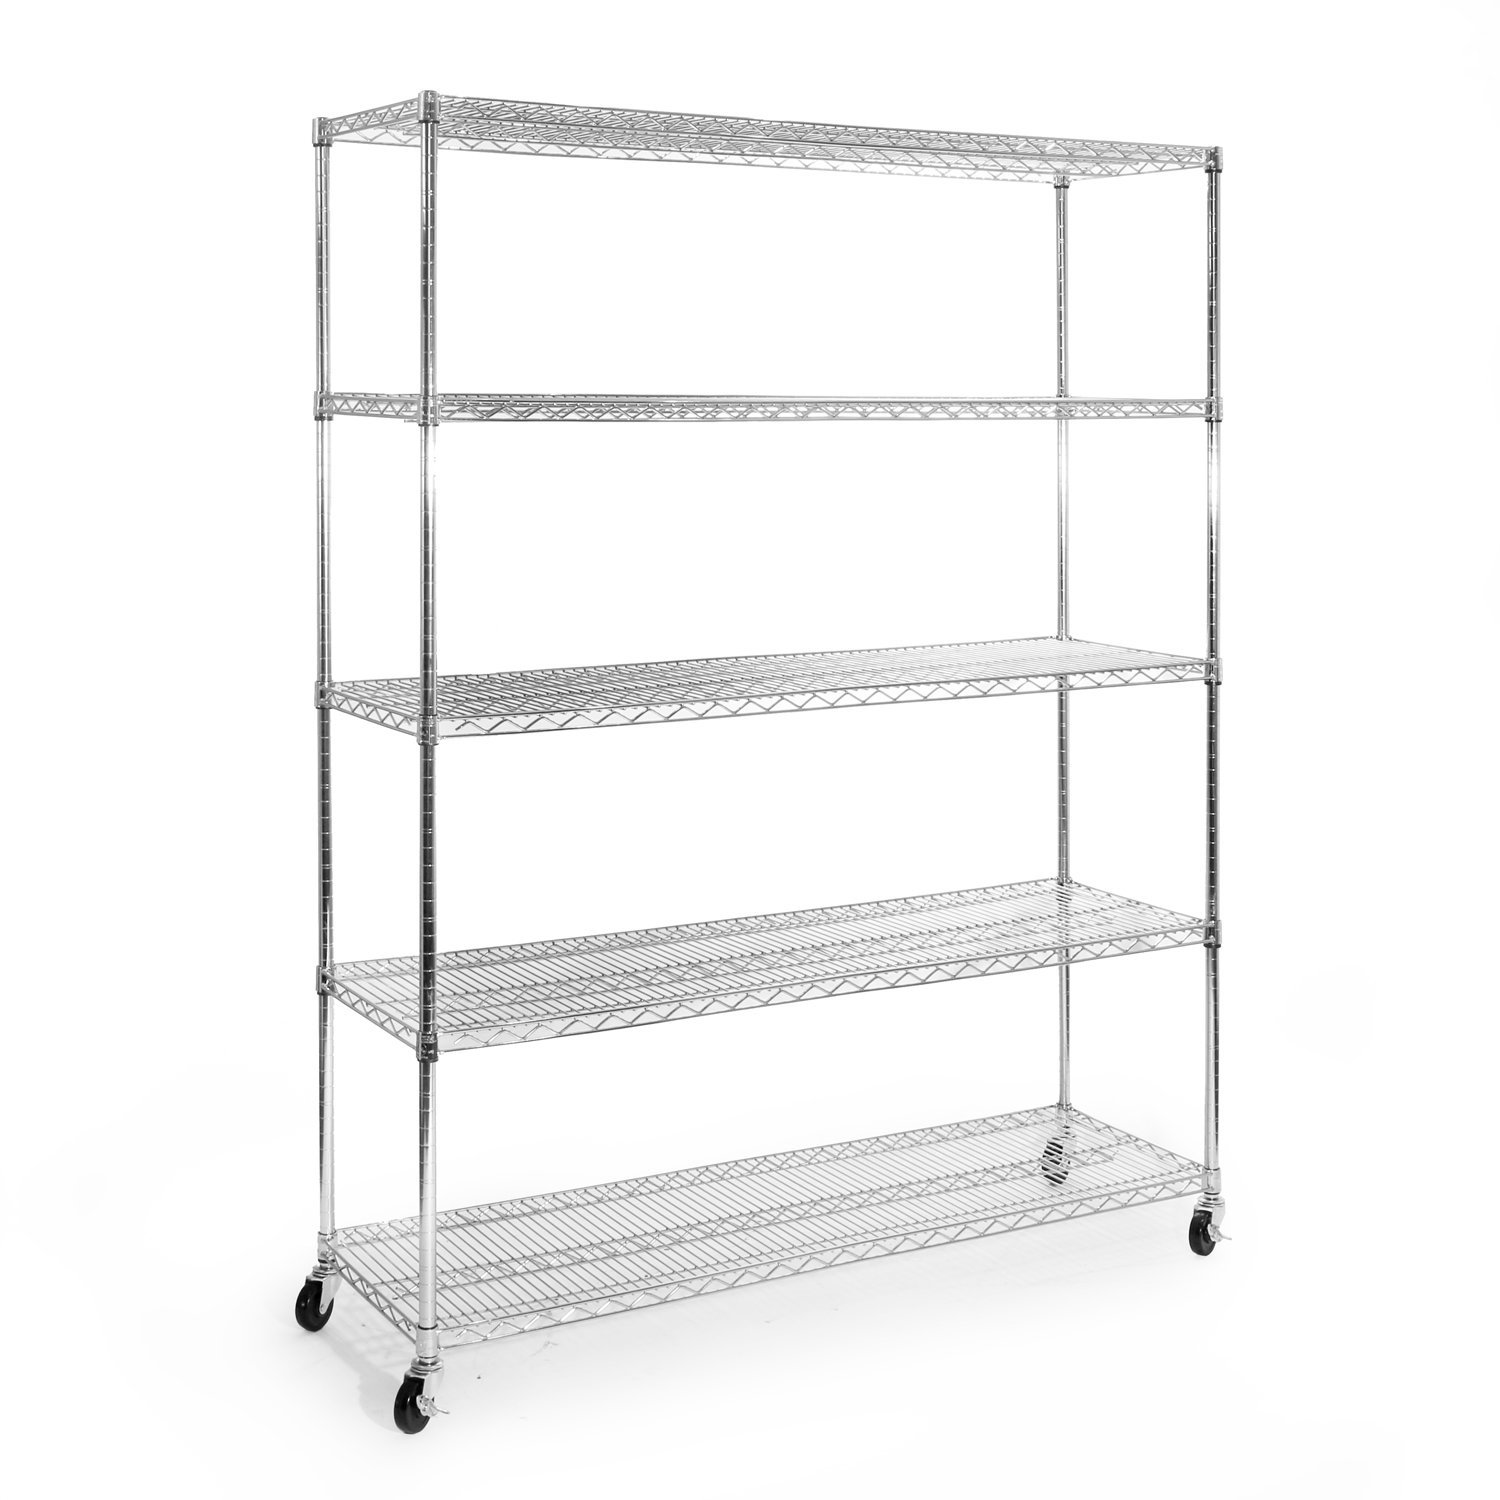 Seville Classics 5-Tier UltraZinc NSF Steel Wire Shelving  /w Wheels, 18'' D x 60'' W x 72'' H